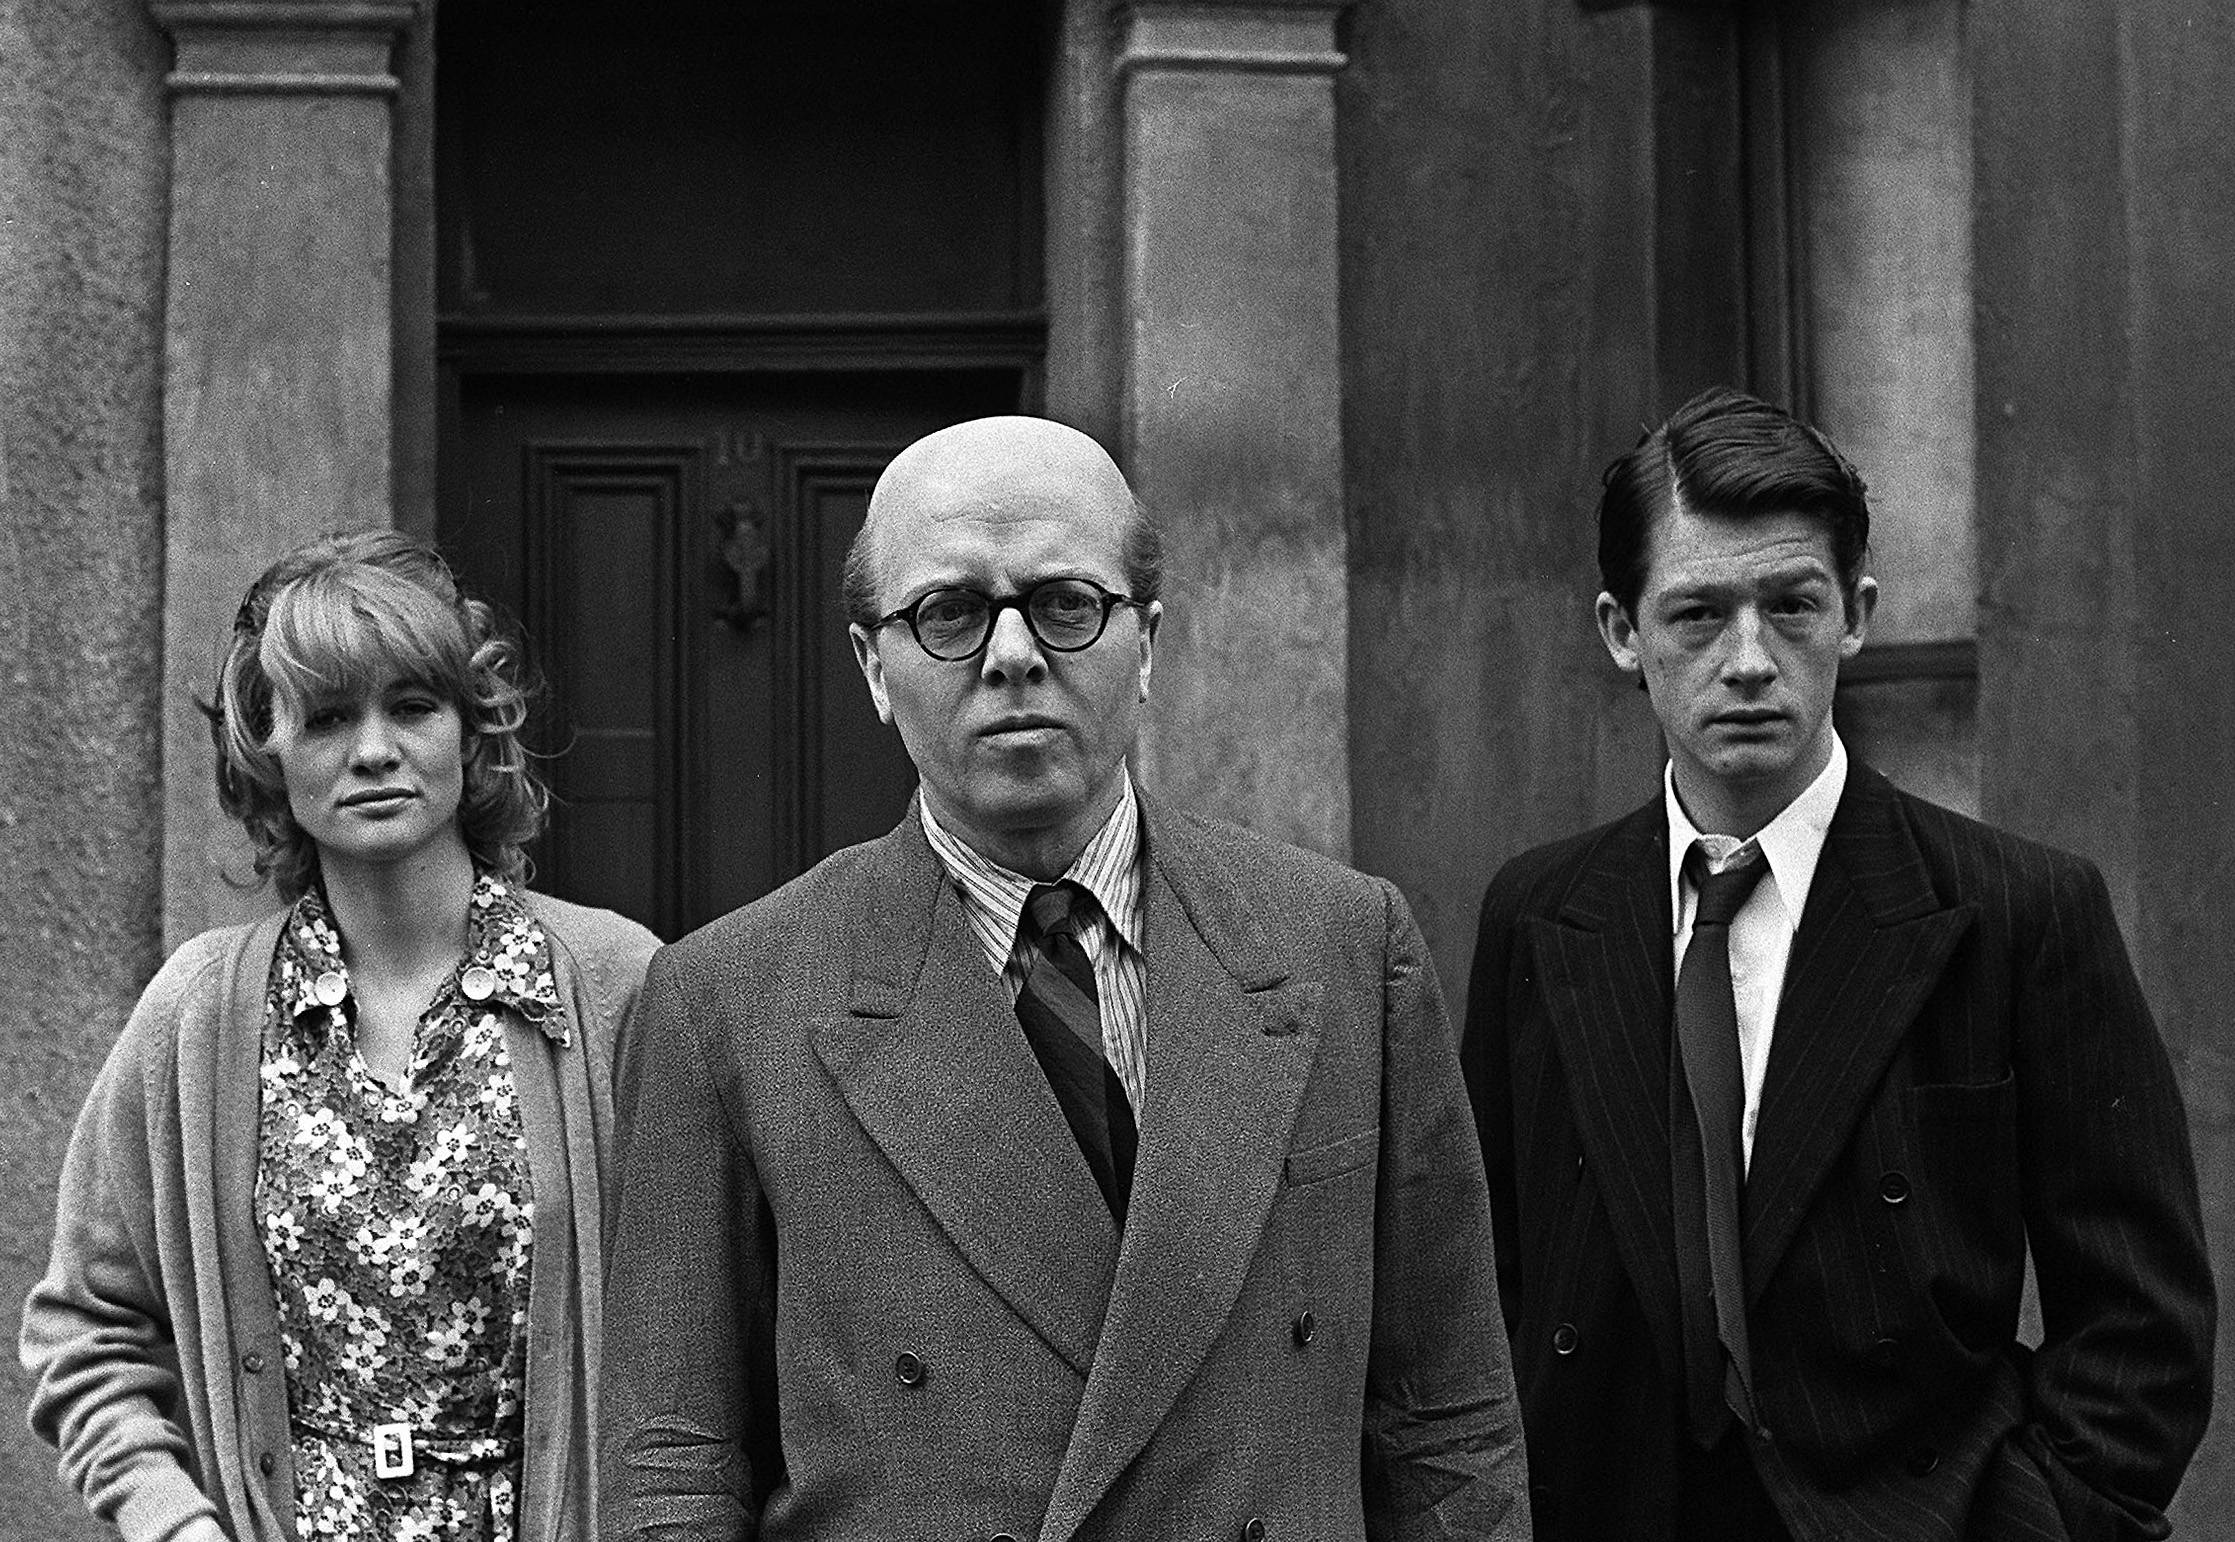 British actor Richard Attenborough, center, stands alongside John Hurt, right, and Judy Geeson in London in this May 17, 1970 file photo. The acclaimed actor and Oscar-winning director, whose film career on both sides of the camera spanned 60 years, died on Sunday. He was 90.